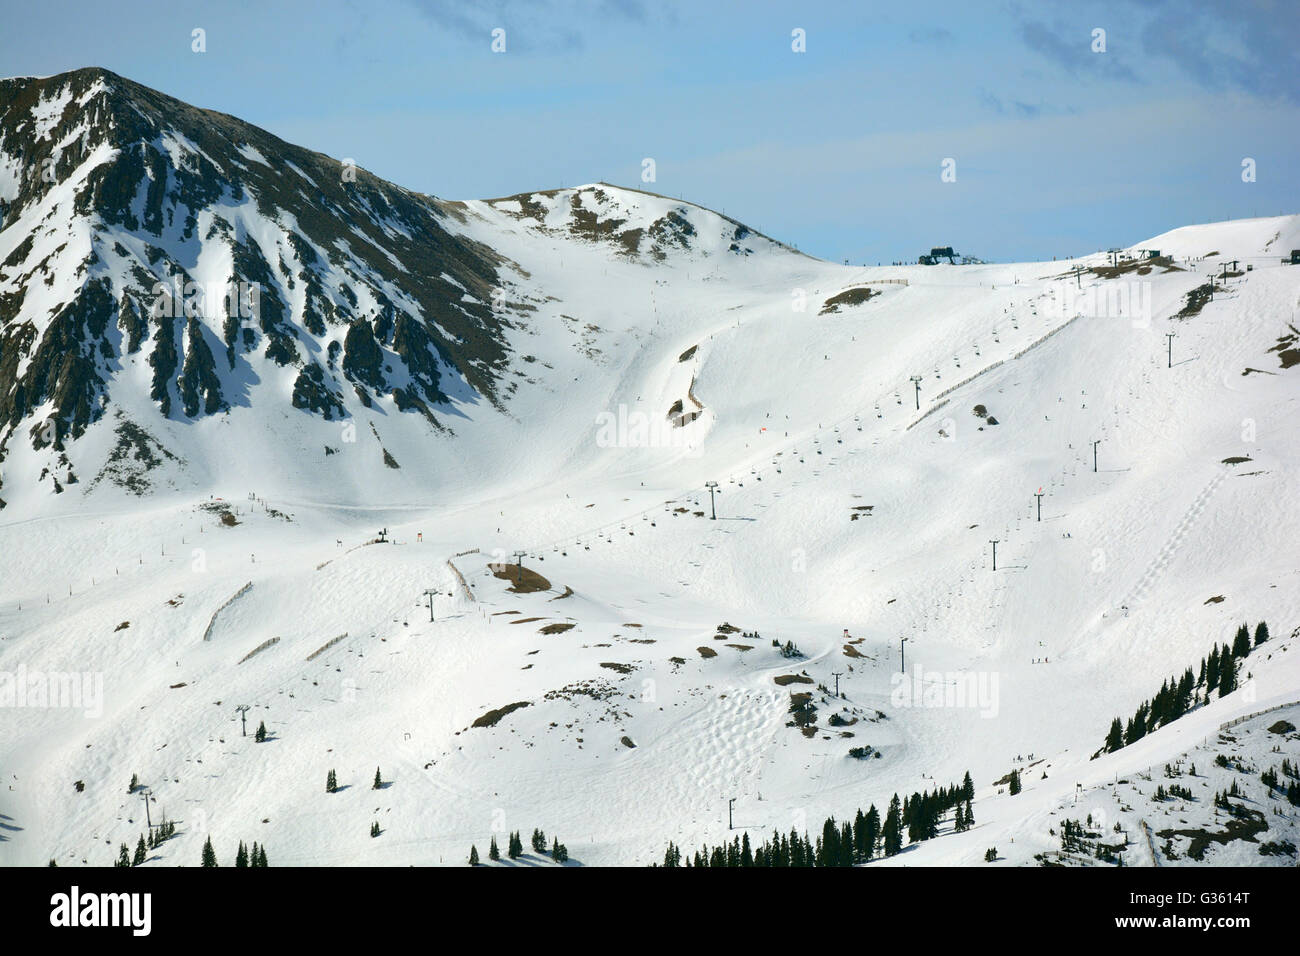 Snow Covered Ski Resort from Far Away - Stock Image